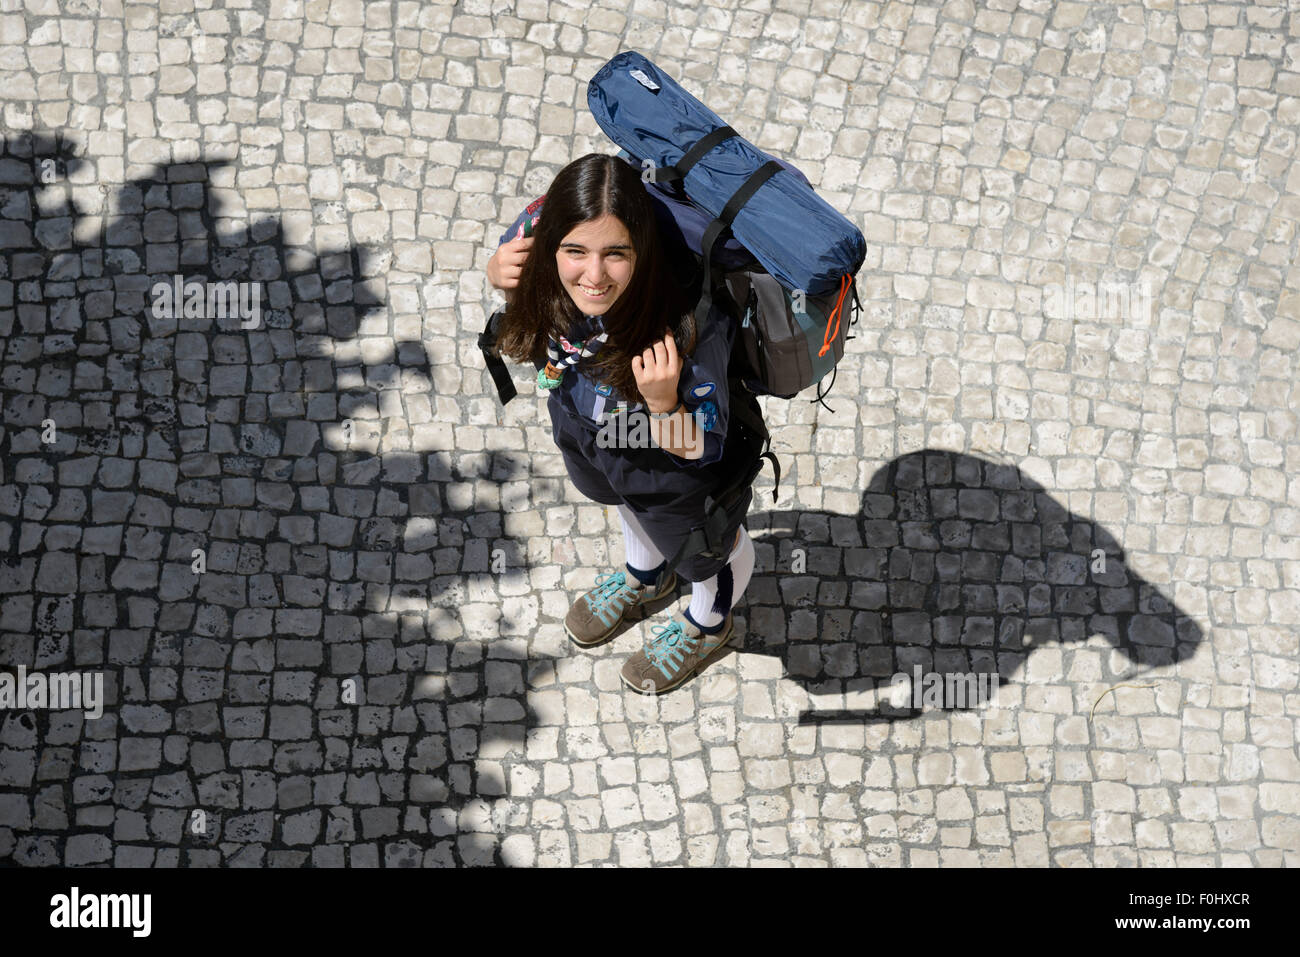 Portrait of a girl scout in scouting uniform wearing a backpack viewed from above - Stock Image